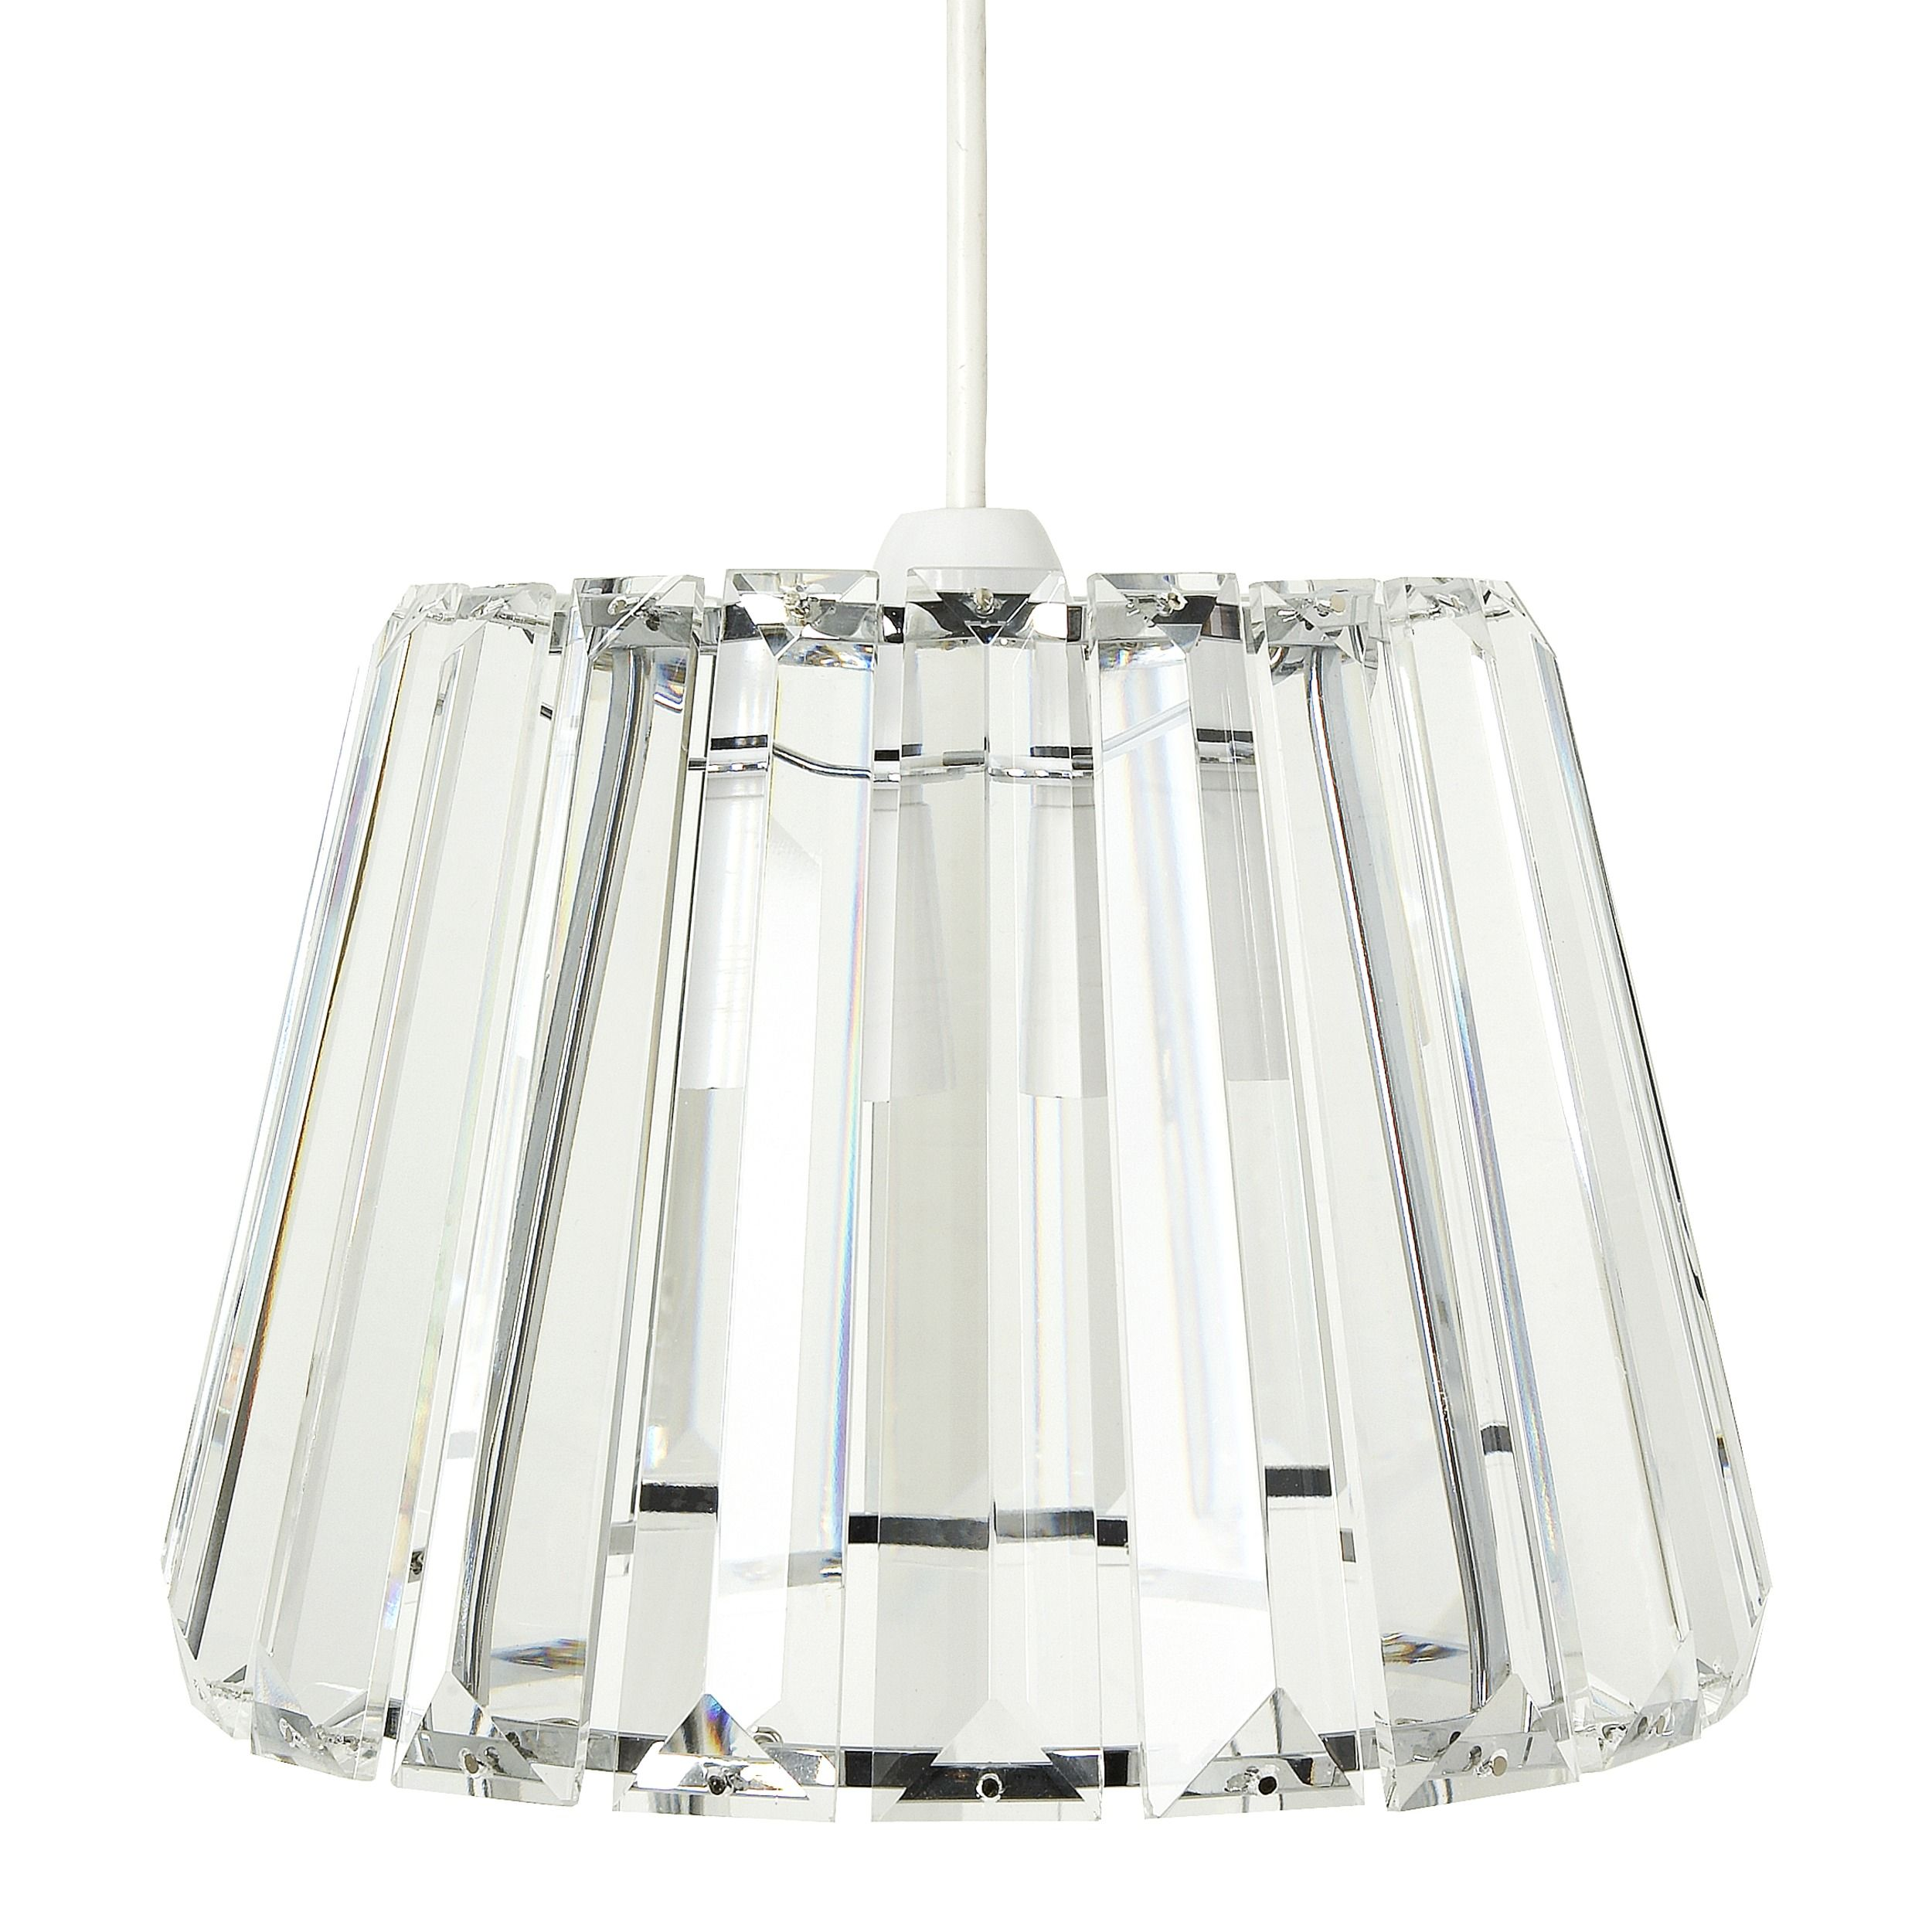 Google image result for httplauraashleycontentebiz capri glass ceiling shade a stylish collection combining chrome style arms and fittings with elegant glass rod shades ceiling lights mozeypictures Gallery